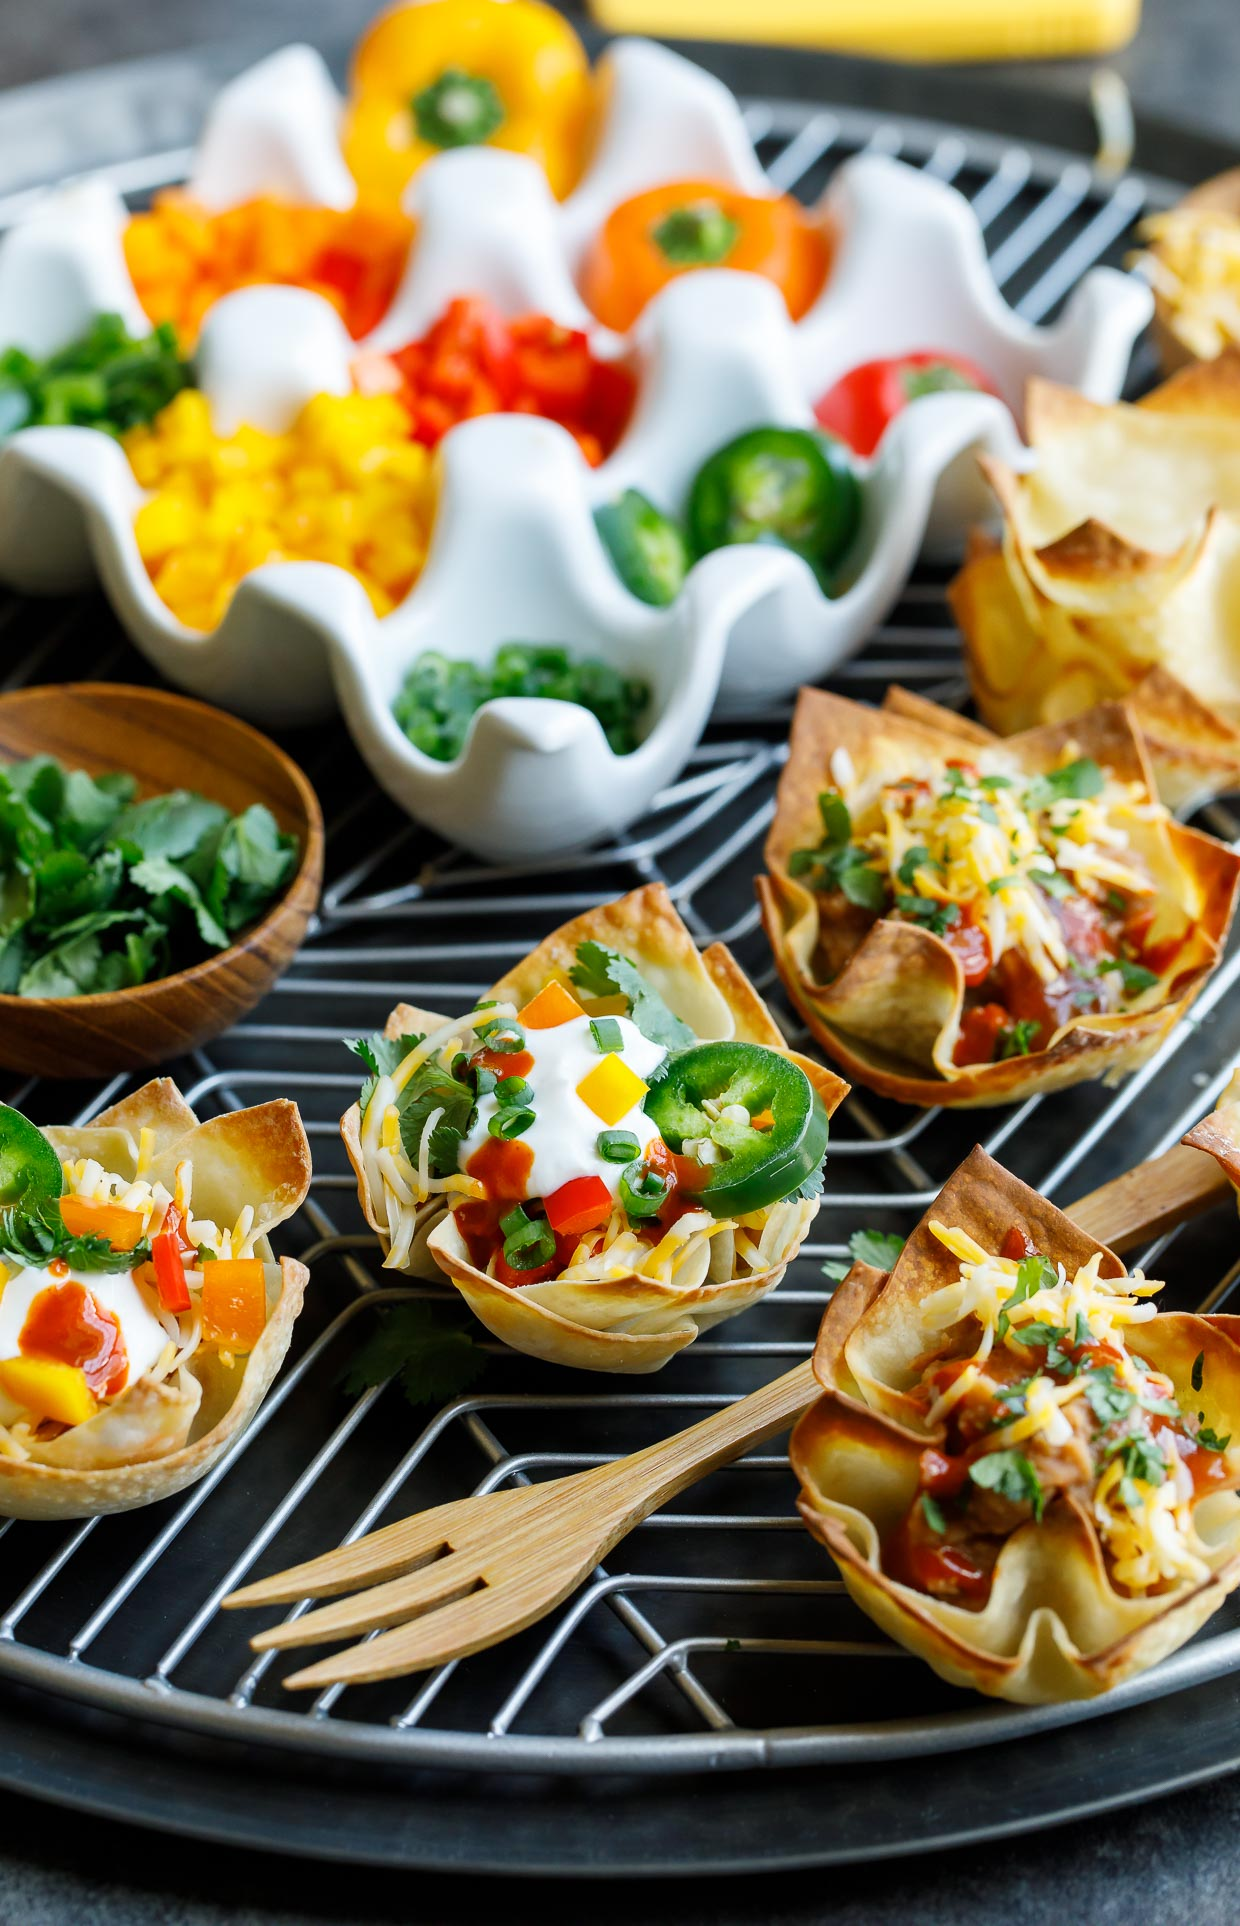 Vegetarian Wonton Taco Cups with Topping and Garnish